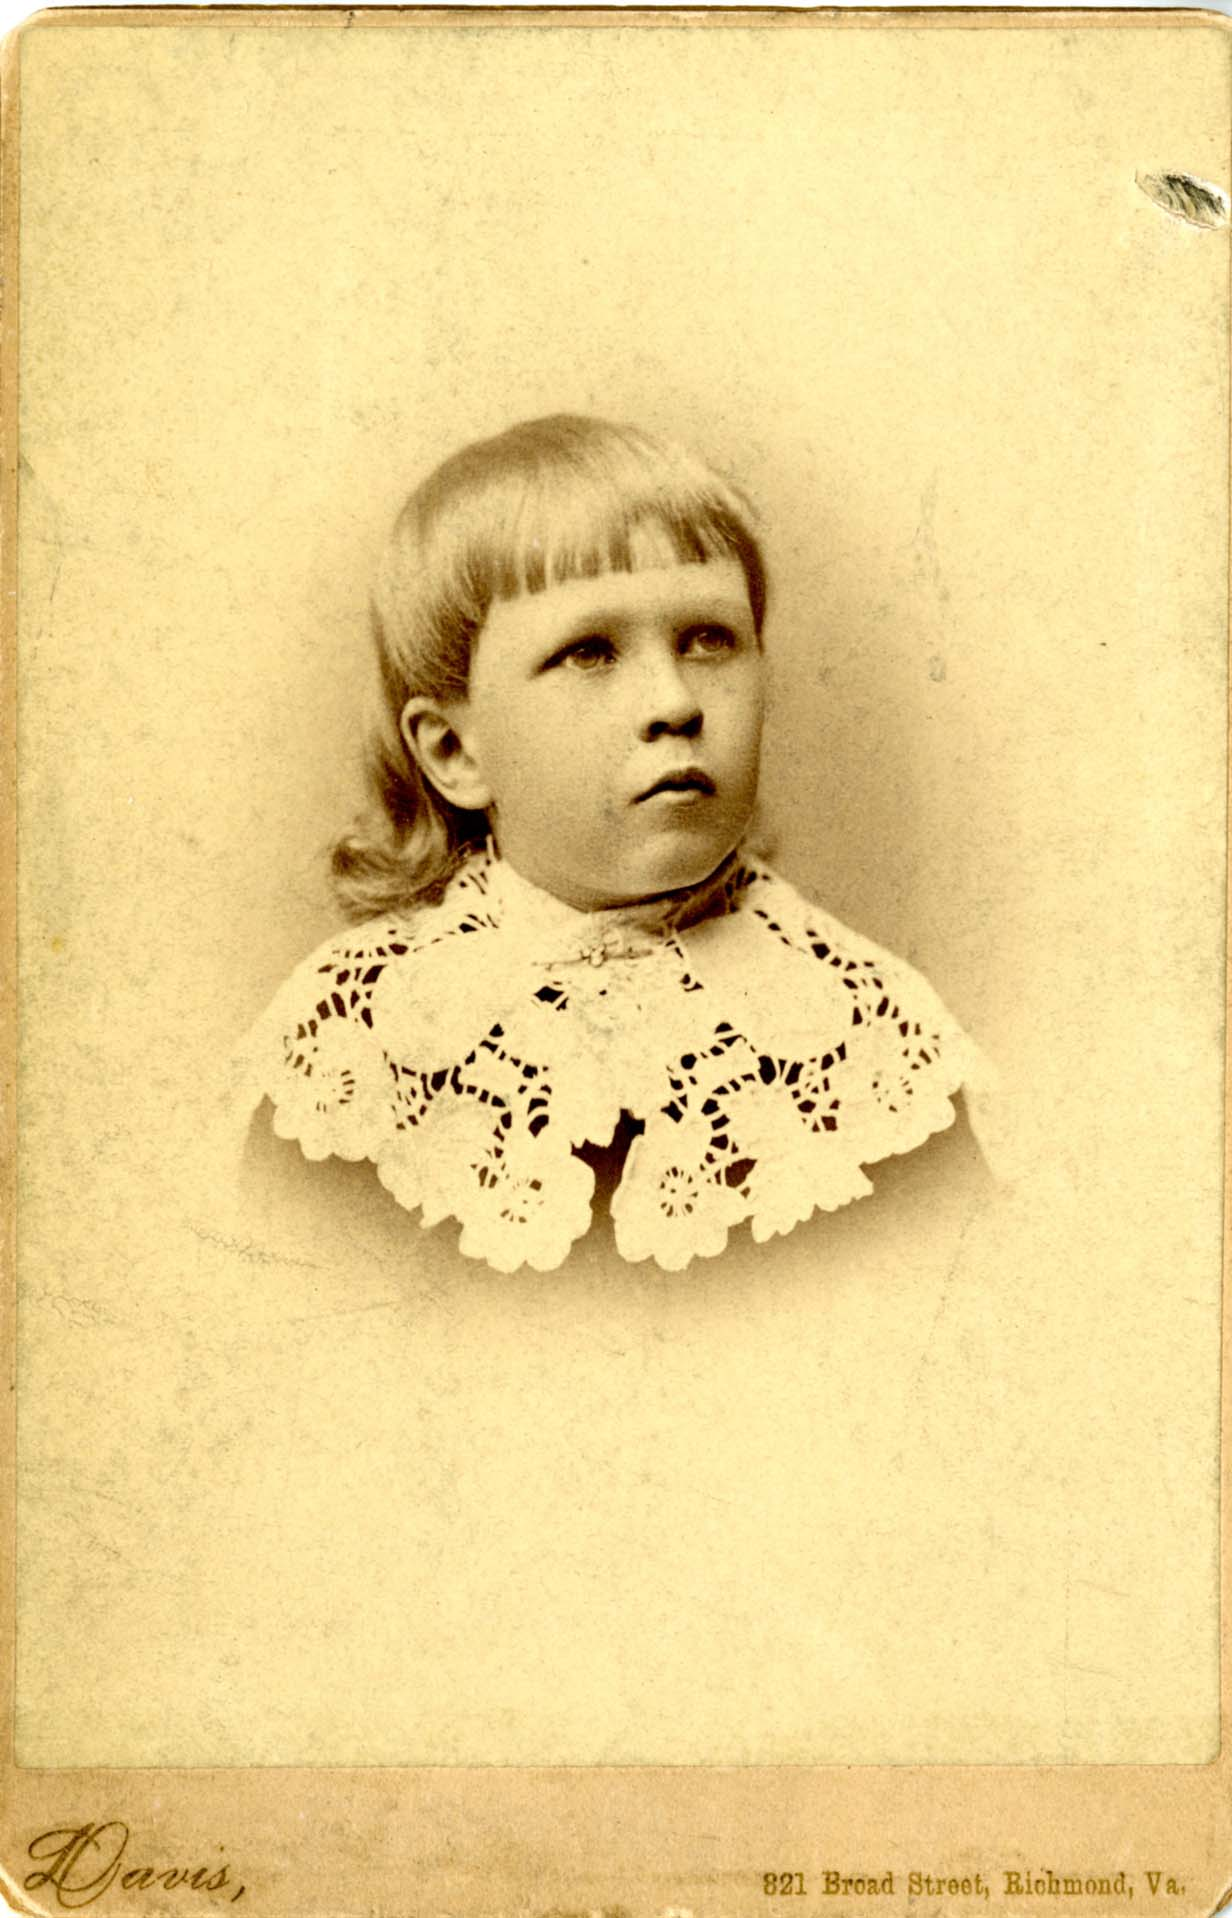 RG 60 Series XI B1 James Branch Cabell c1884 age 4.jpg